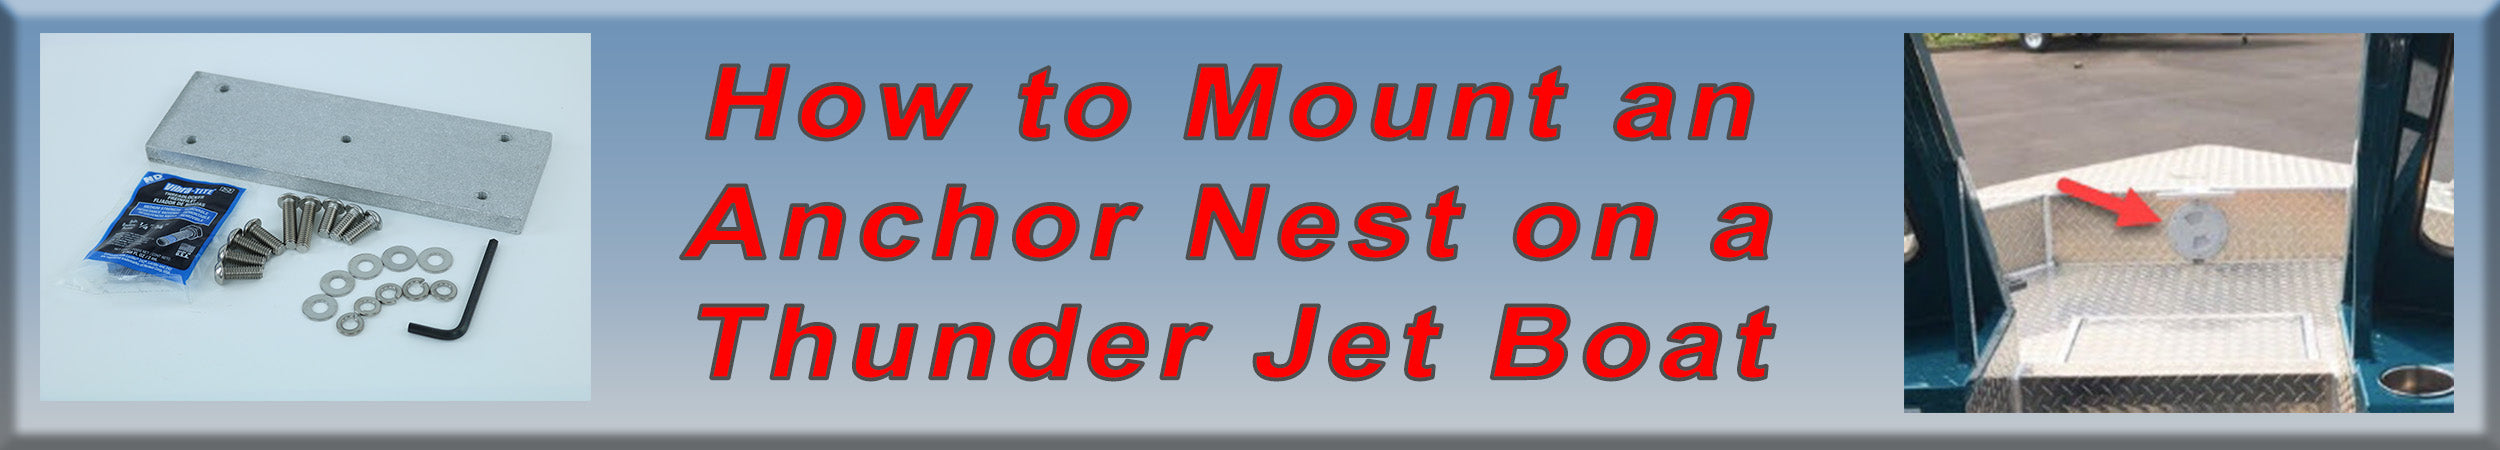 Mounting an Anchor Nest on Your Thunder Jet